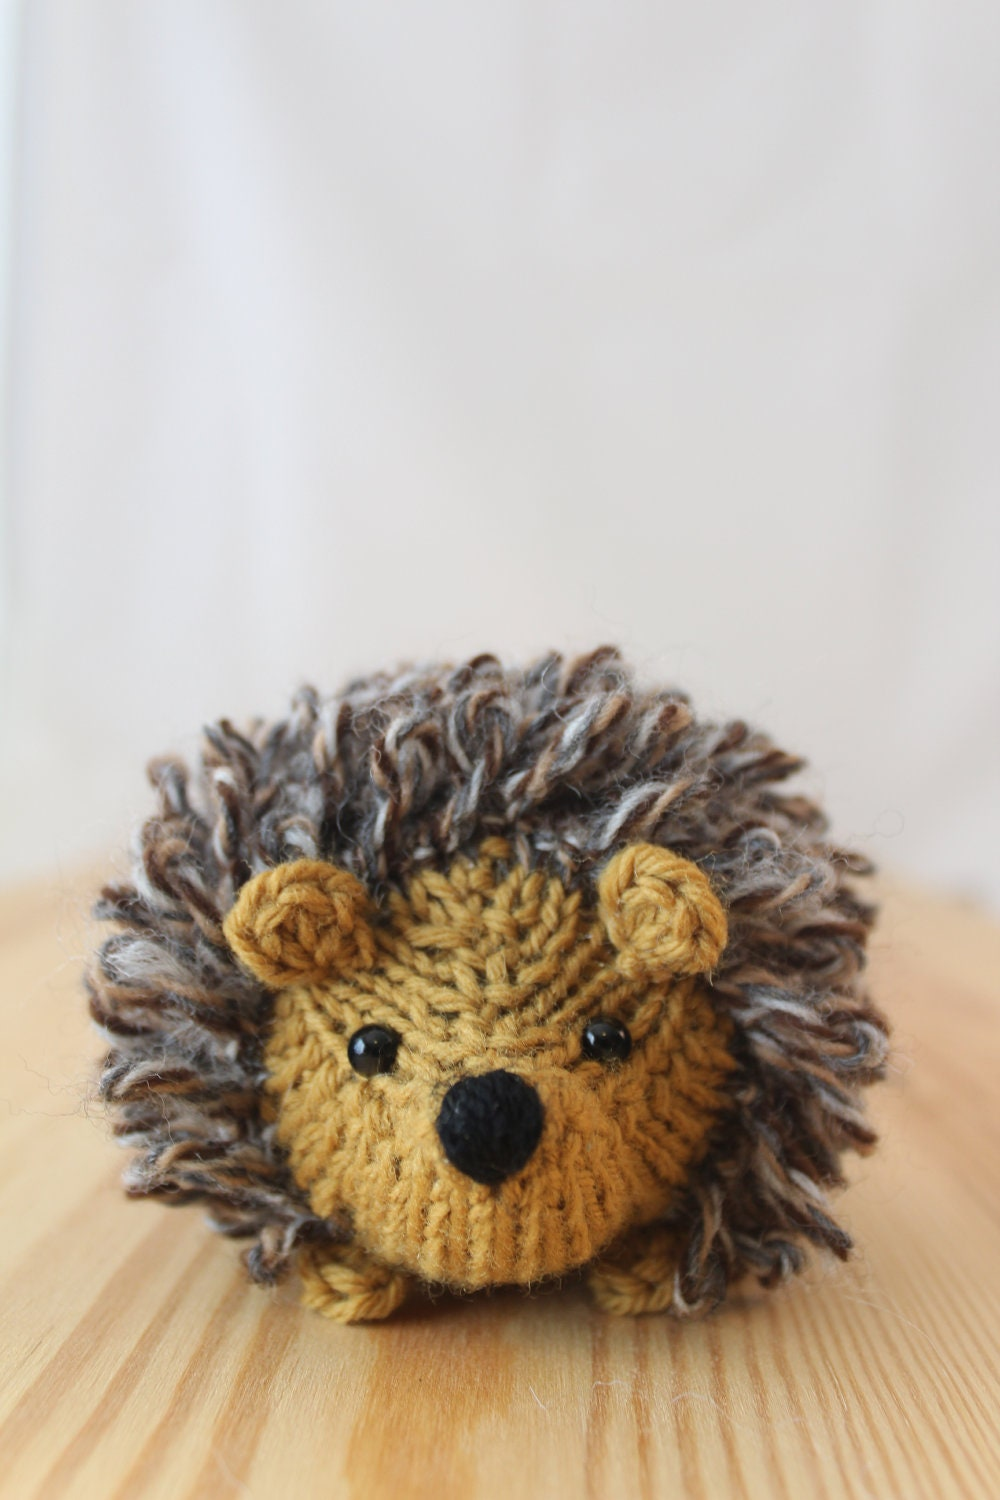 Stuffed Hedgehog Knitting Pattern : Little knitted hedgehog in honey and tweed stuffed by ...